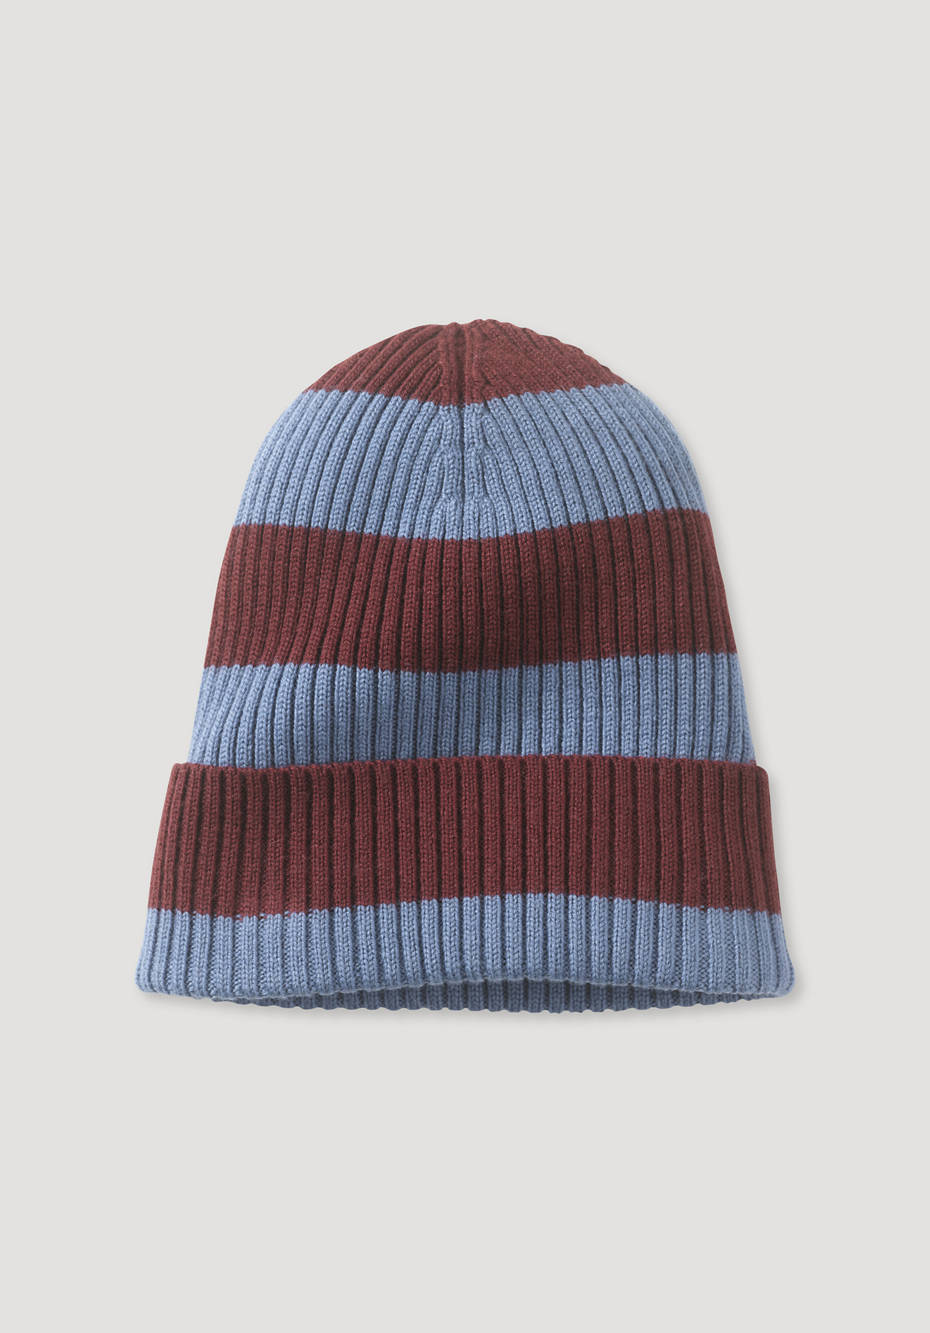 Betterecycling hat made of pure merino wool